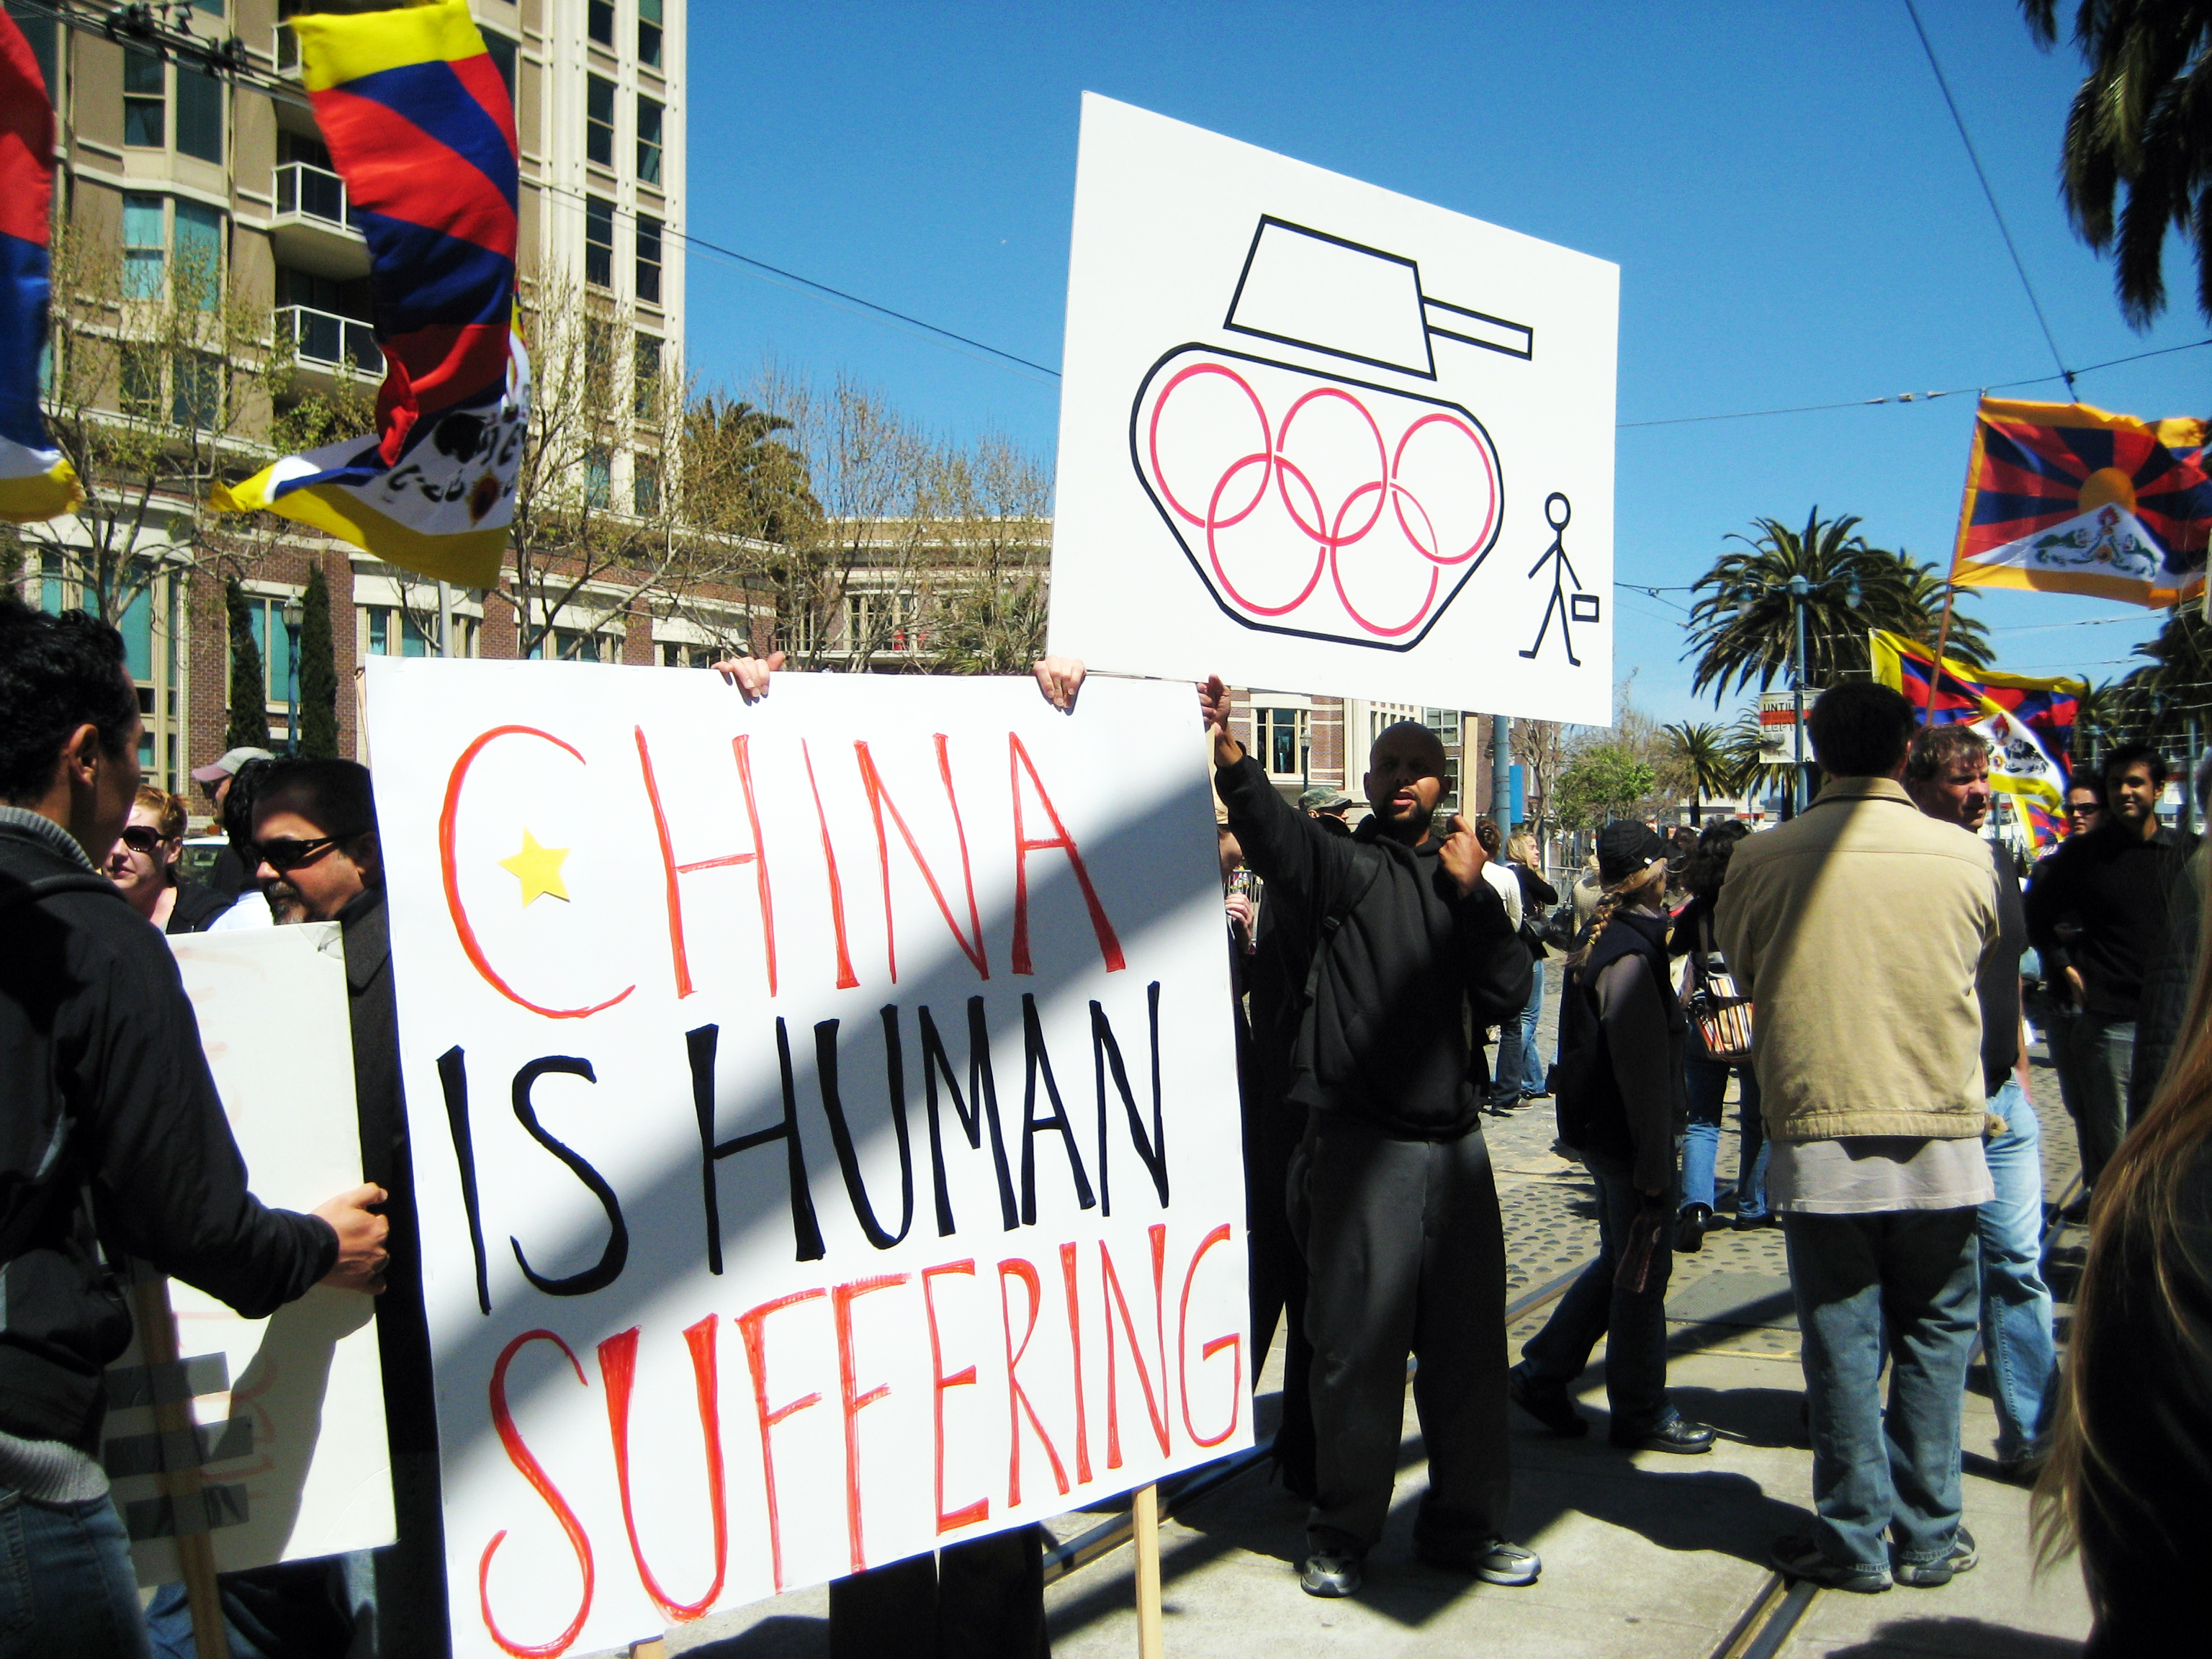 china vs human right China's human rights record has been criticised for years but what are the main issues.